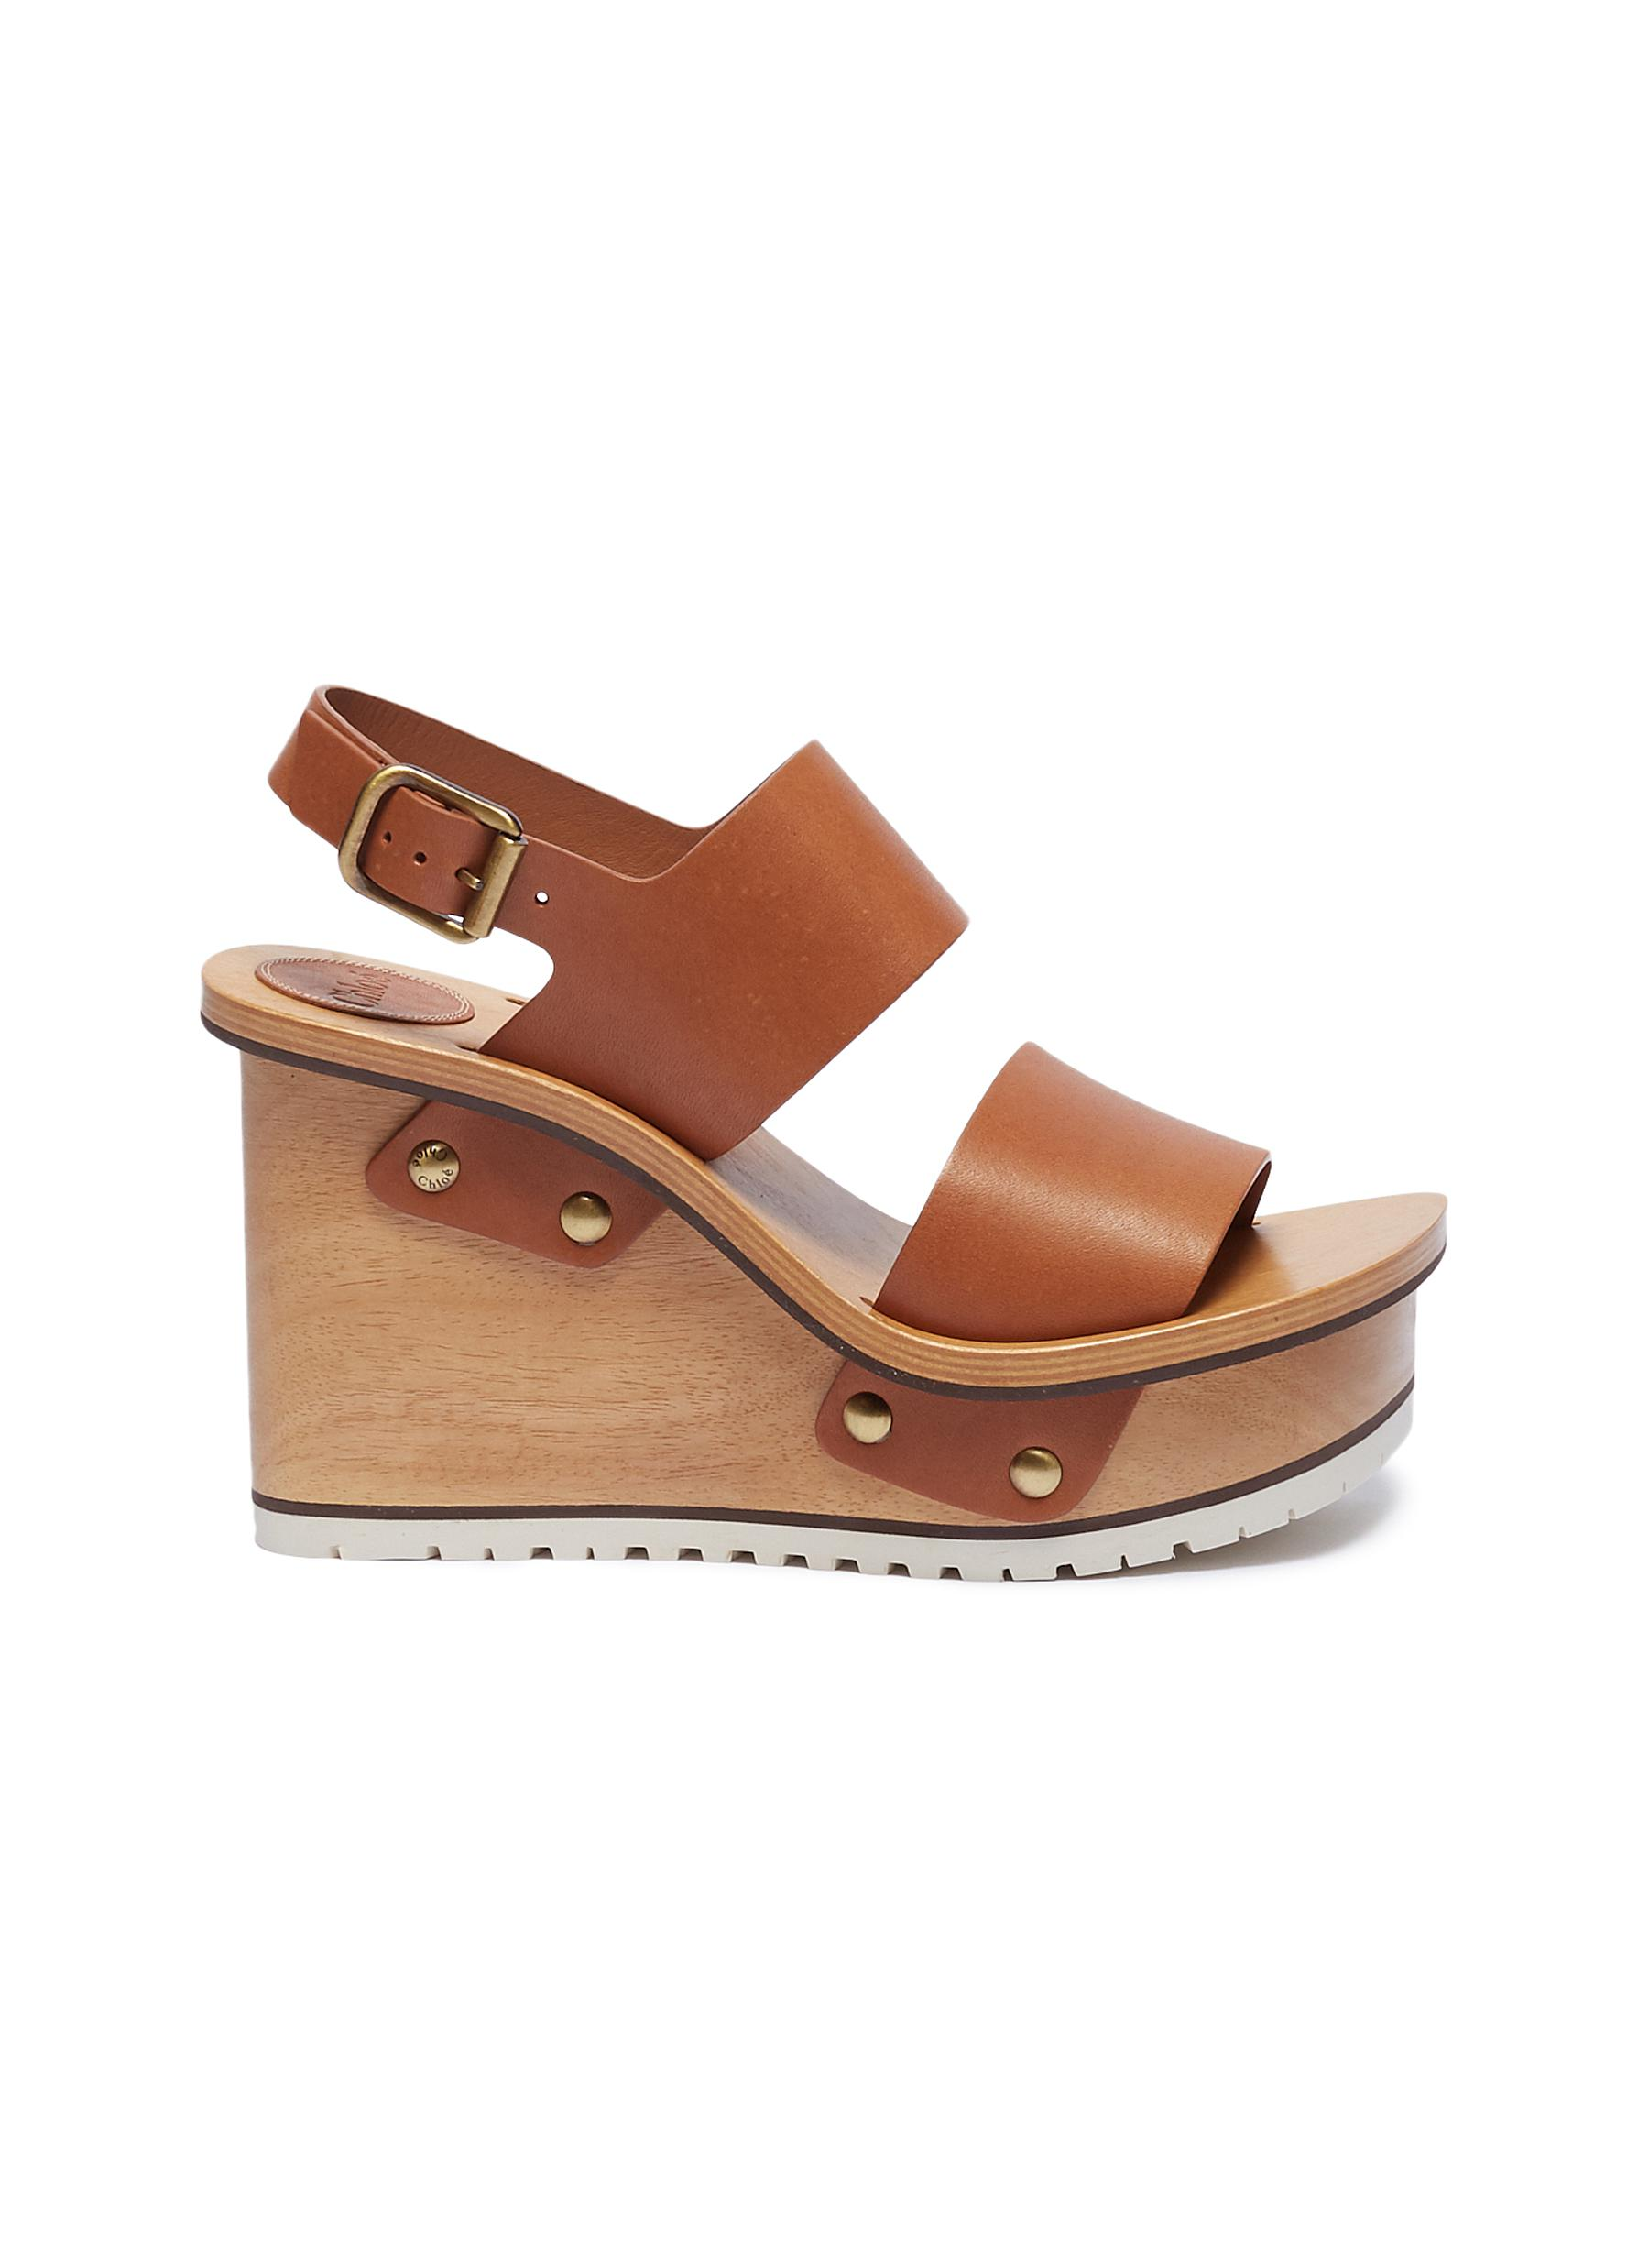 dde548baba3 Chloé. Buckle leather wooden clog wedge sandals